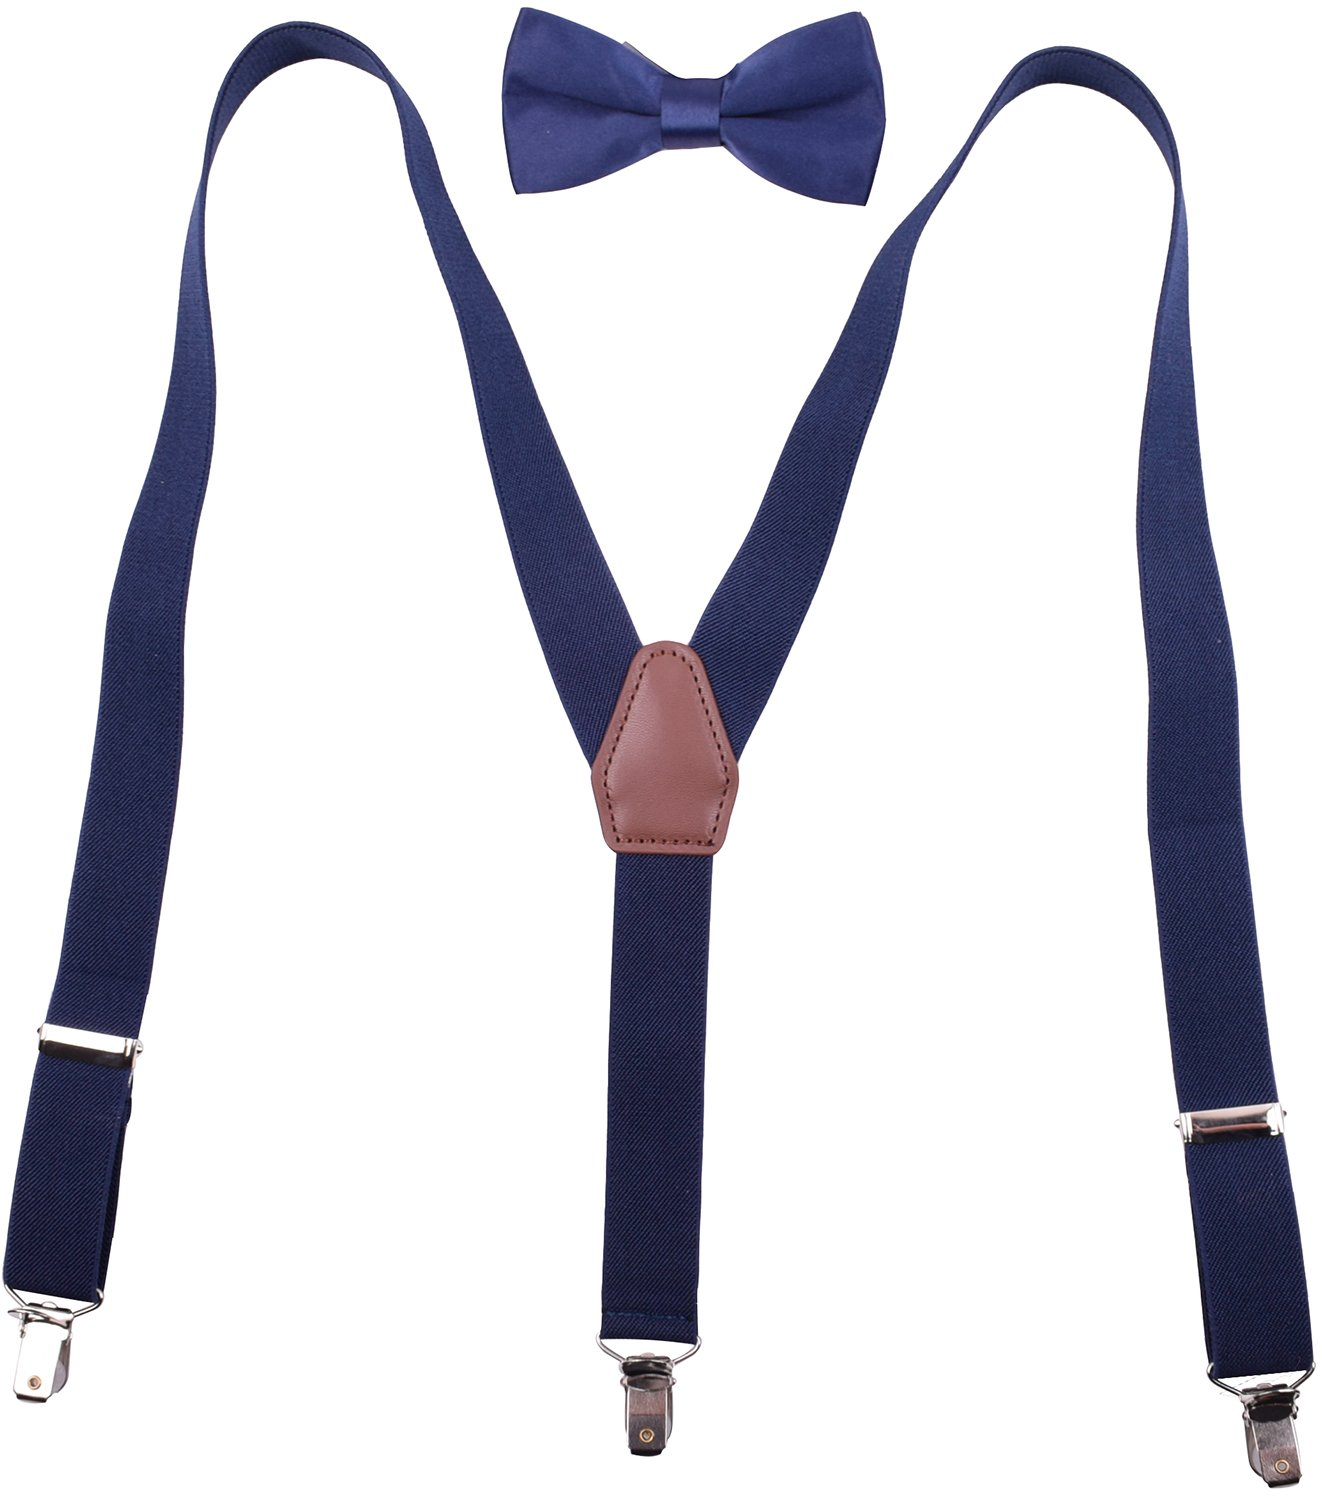 Kids Suspenders and Bow Tie for Party Wedding Y Suspenders for Kids Boys Navy